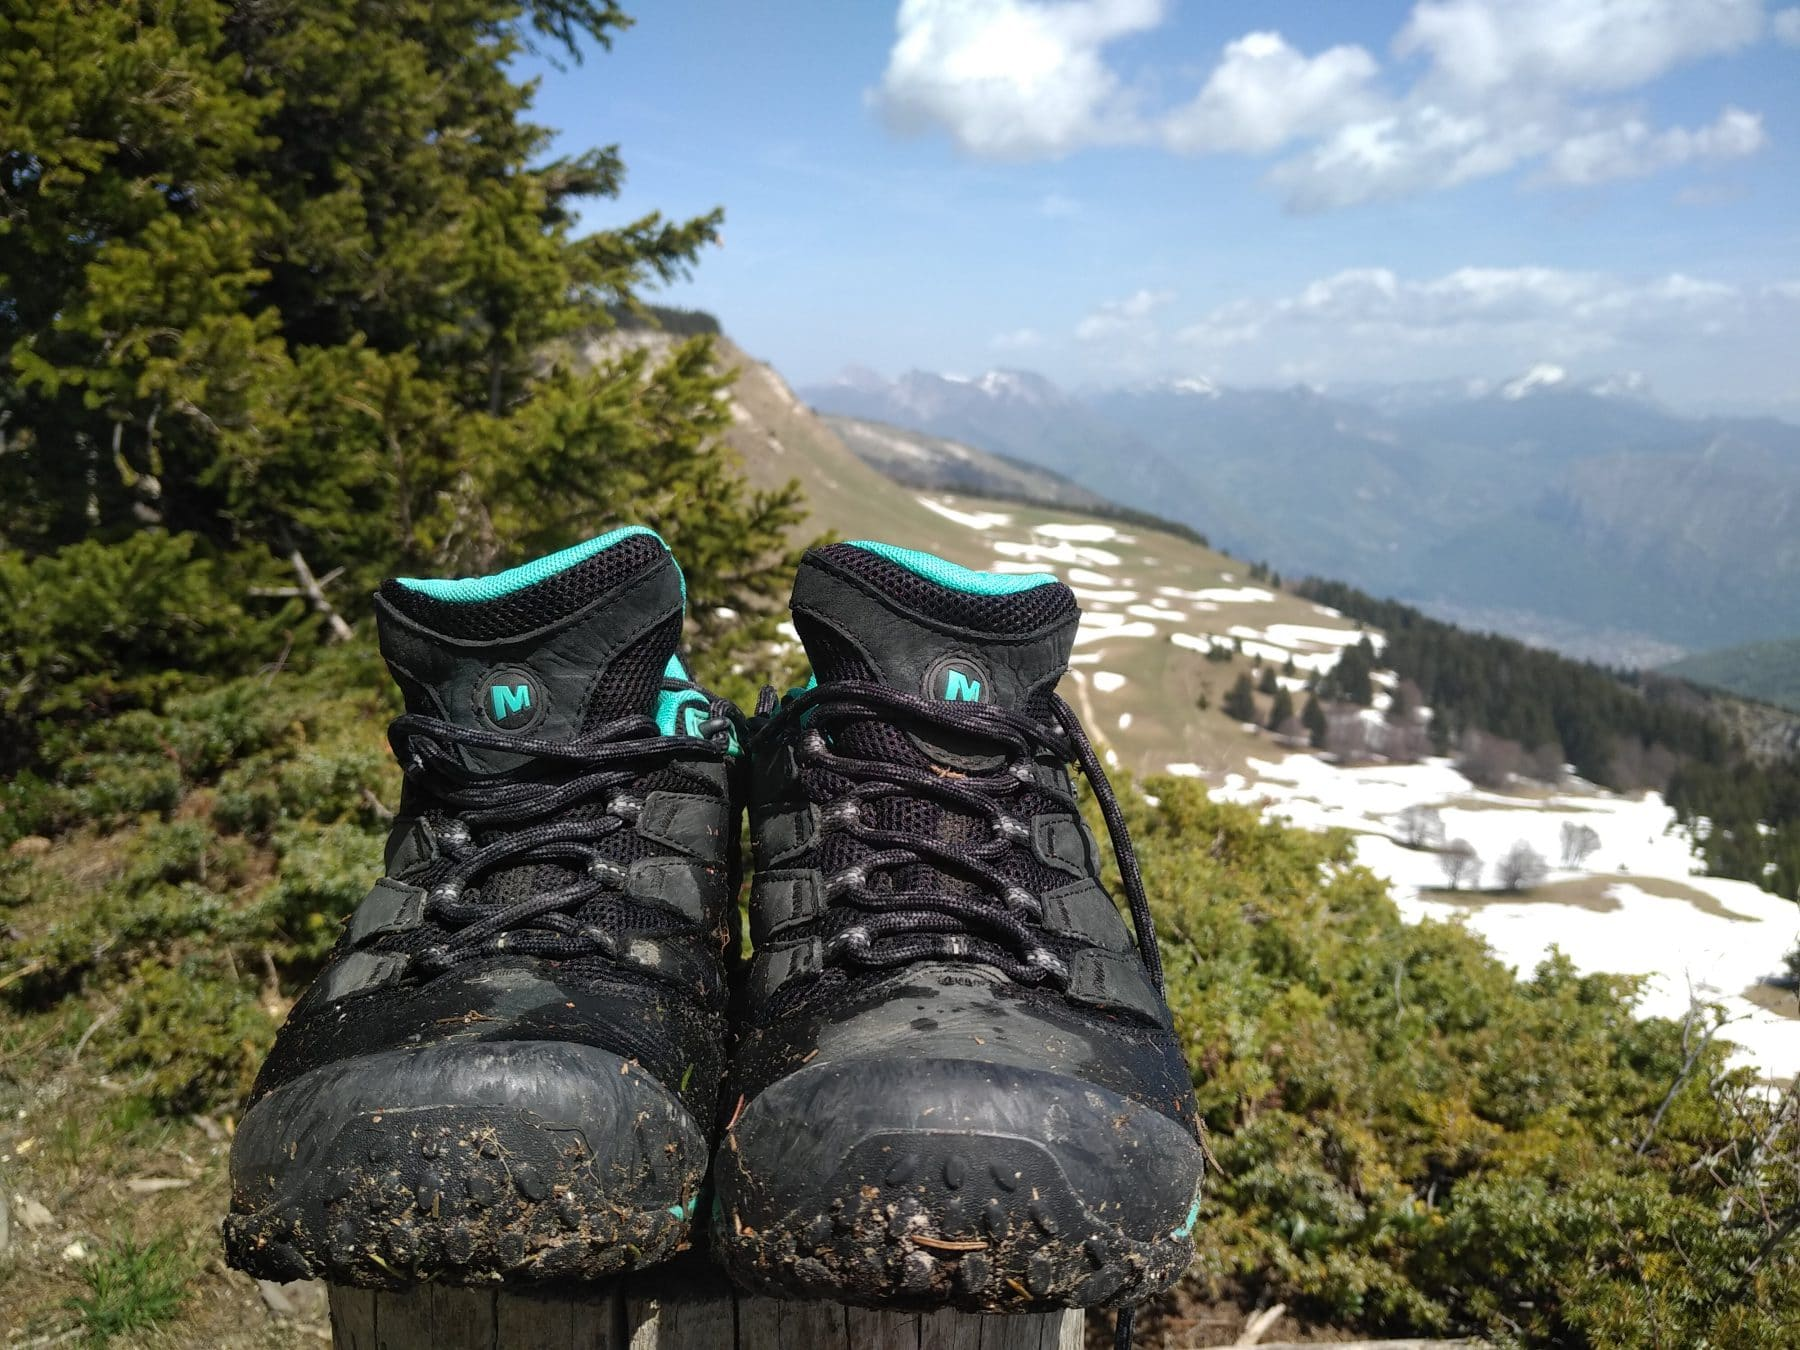 Test Gtx Chaussures Chameleon Merrell 7 HDIEW29Y